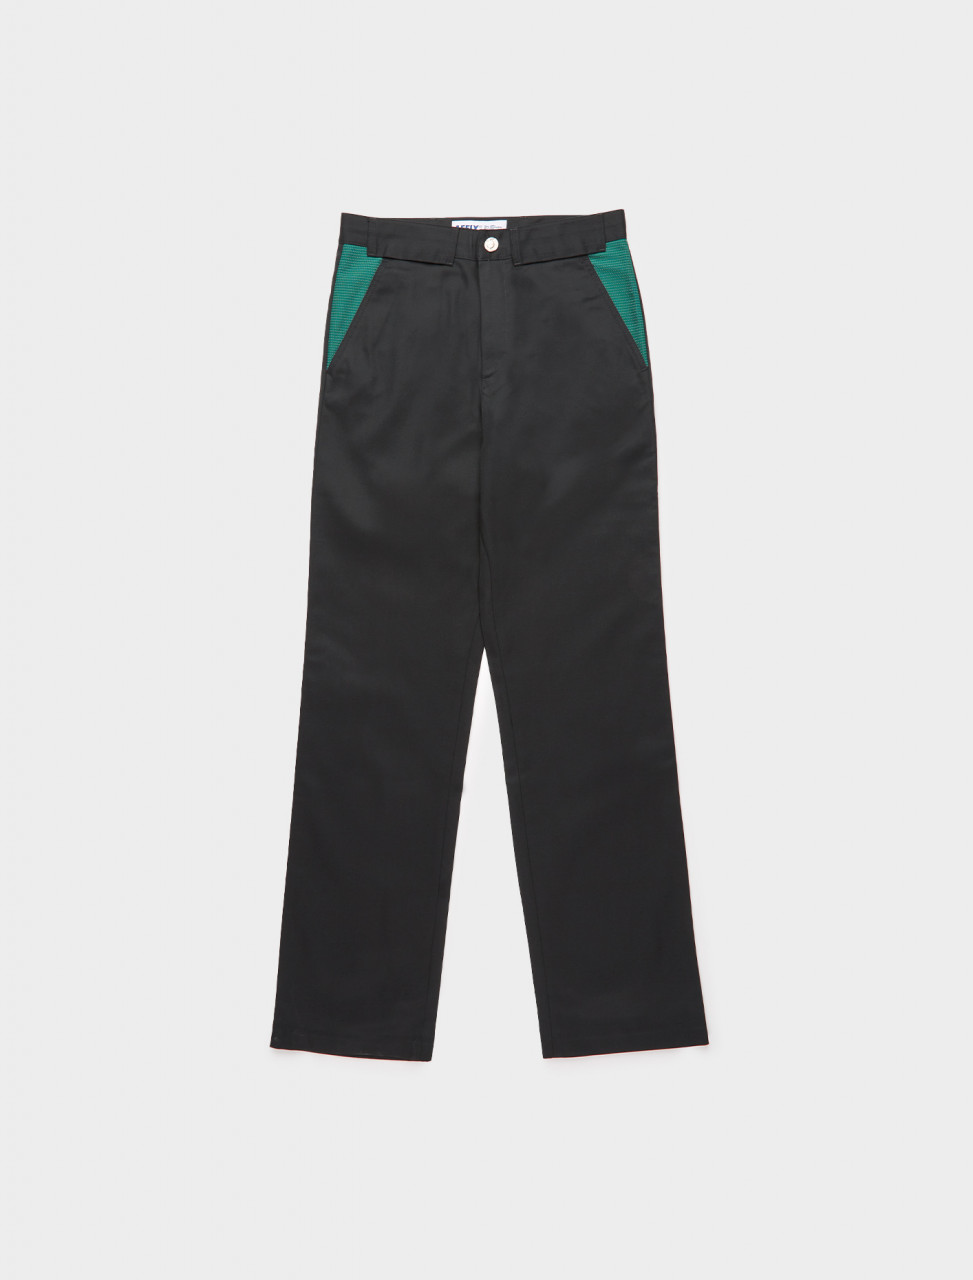 347-AW20TR01-B AFFIX VISIBILITY DUTY PANTS BLACK